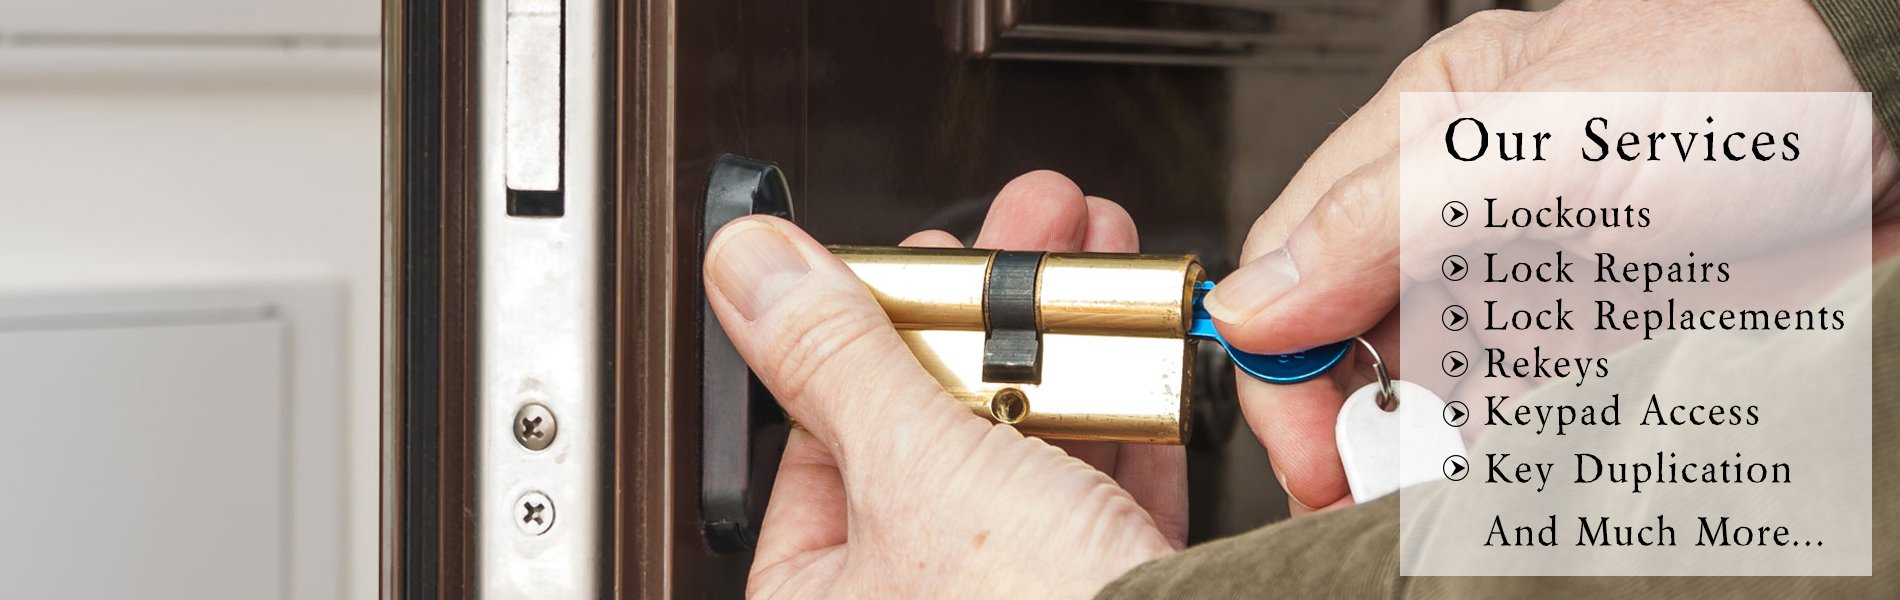 Community Locksmith Store Houston, TX 713-357-0749